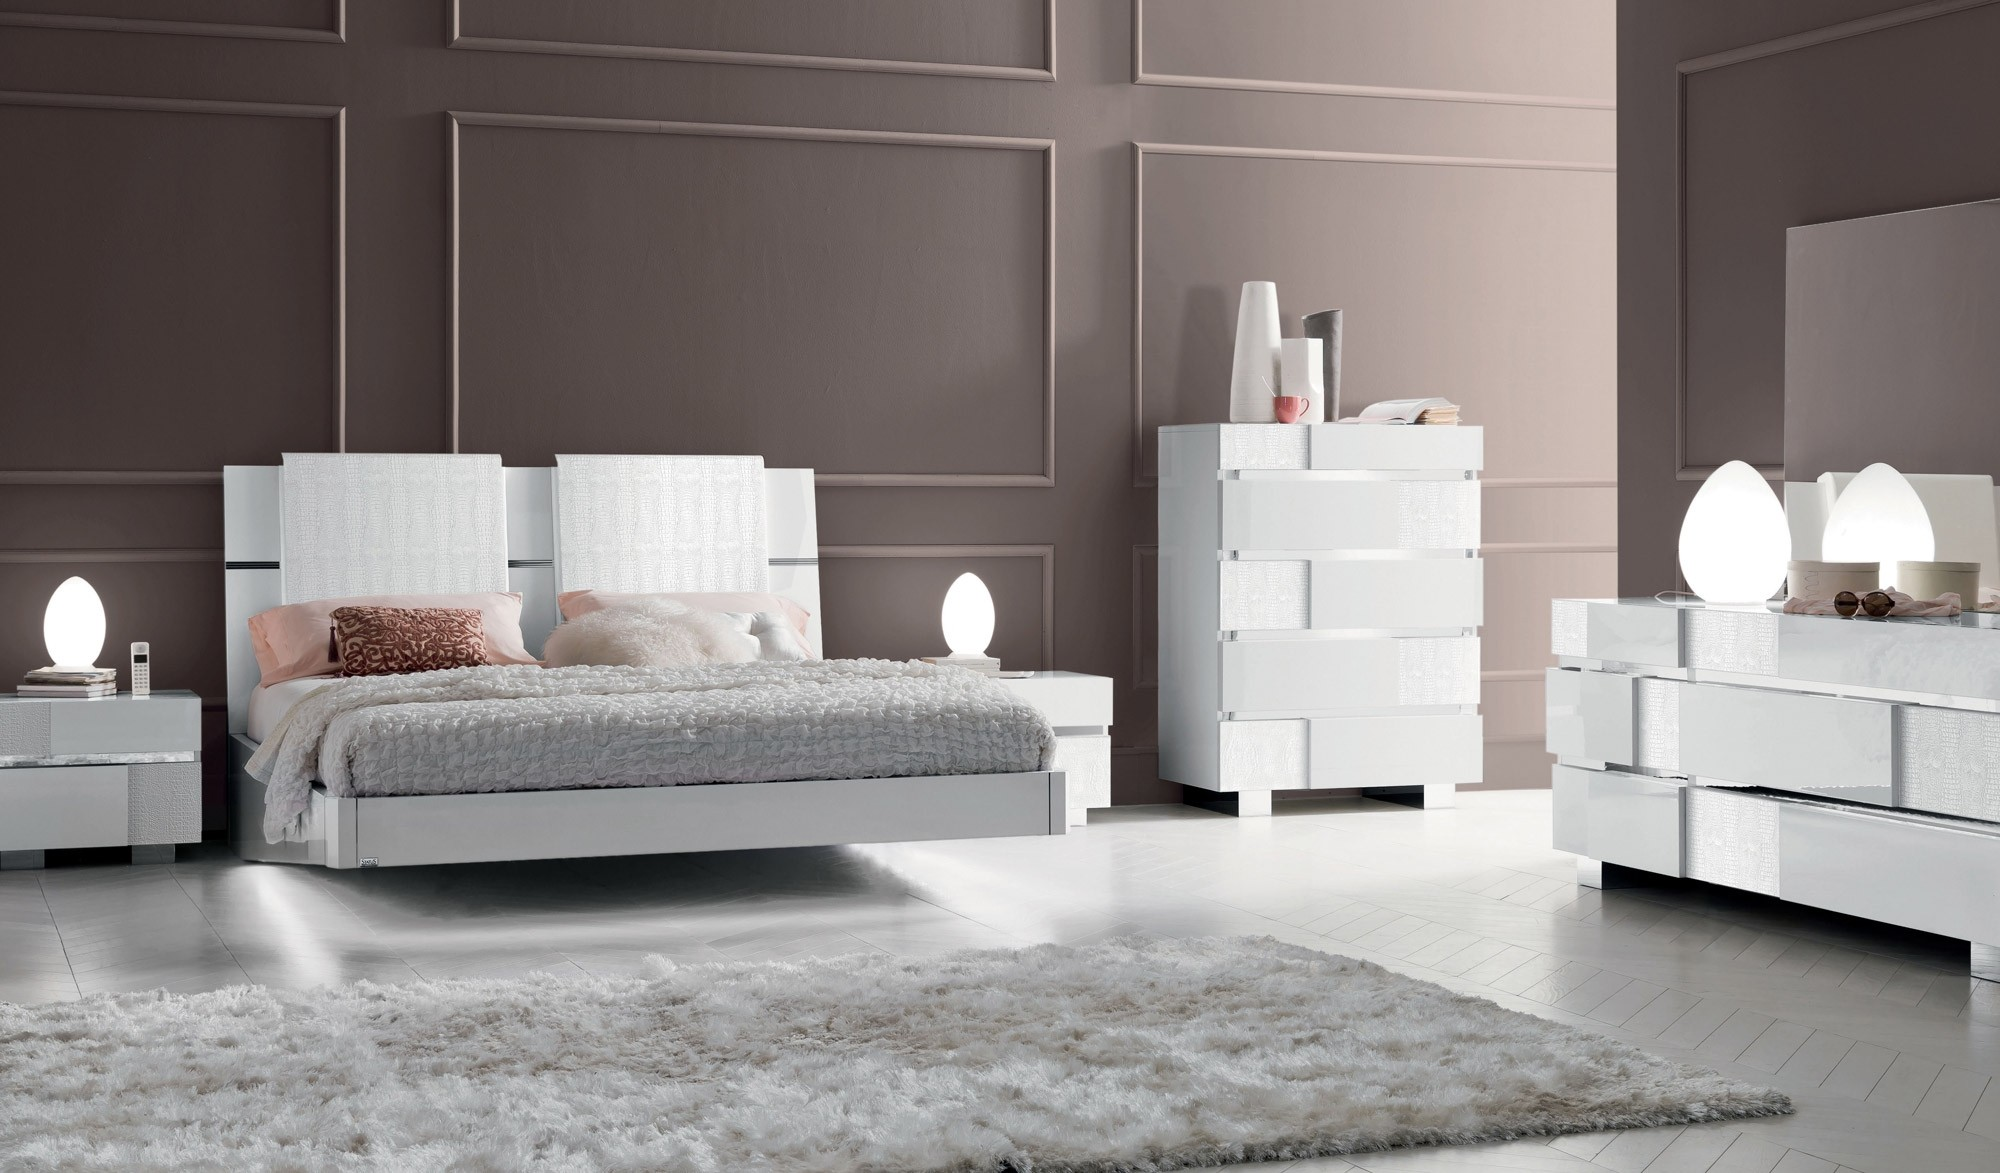 ESF Caprice Italian Bedroom Set in White Lacquer Finish